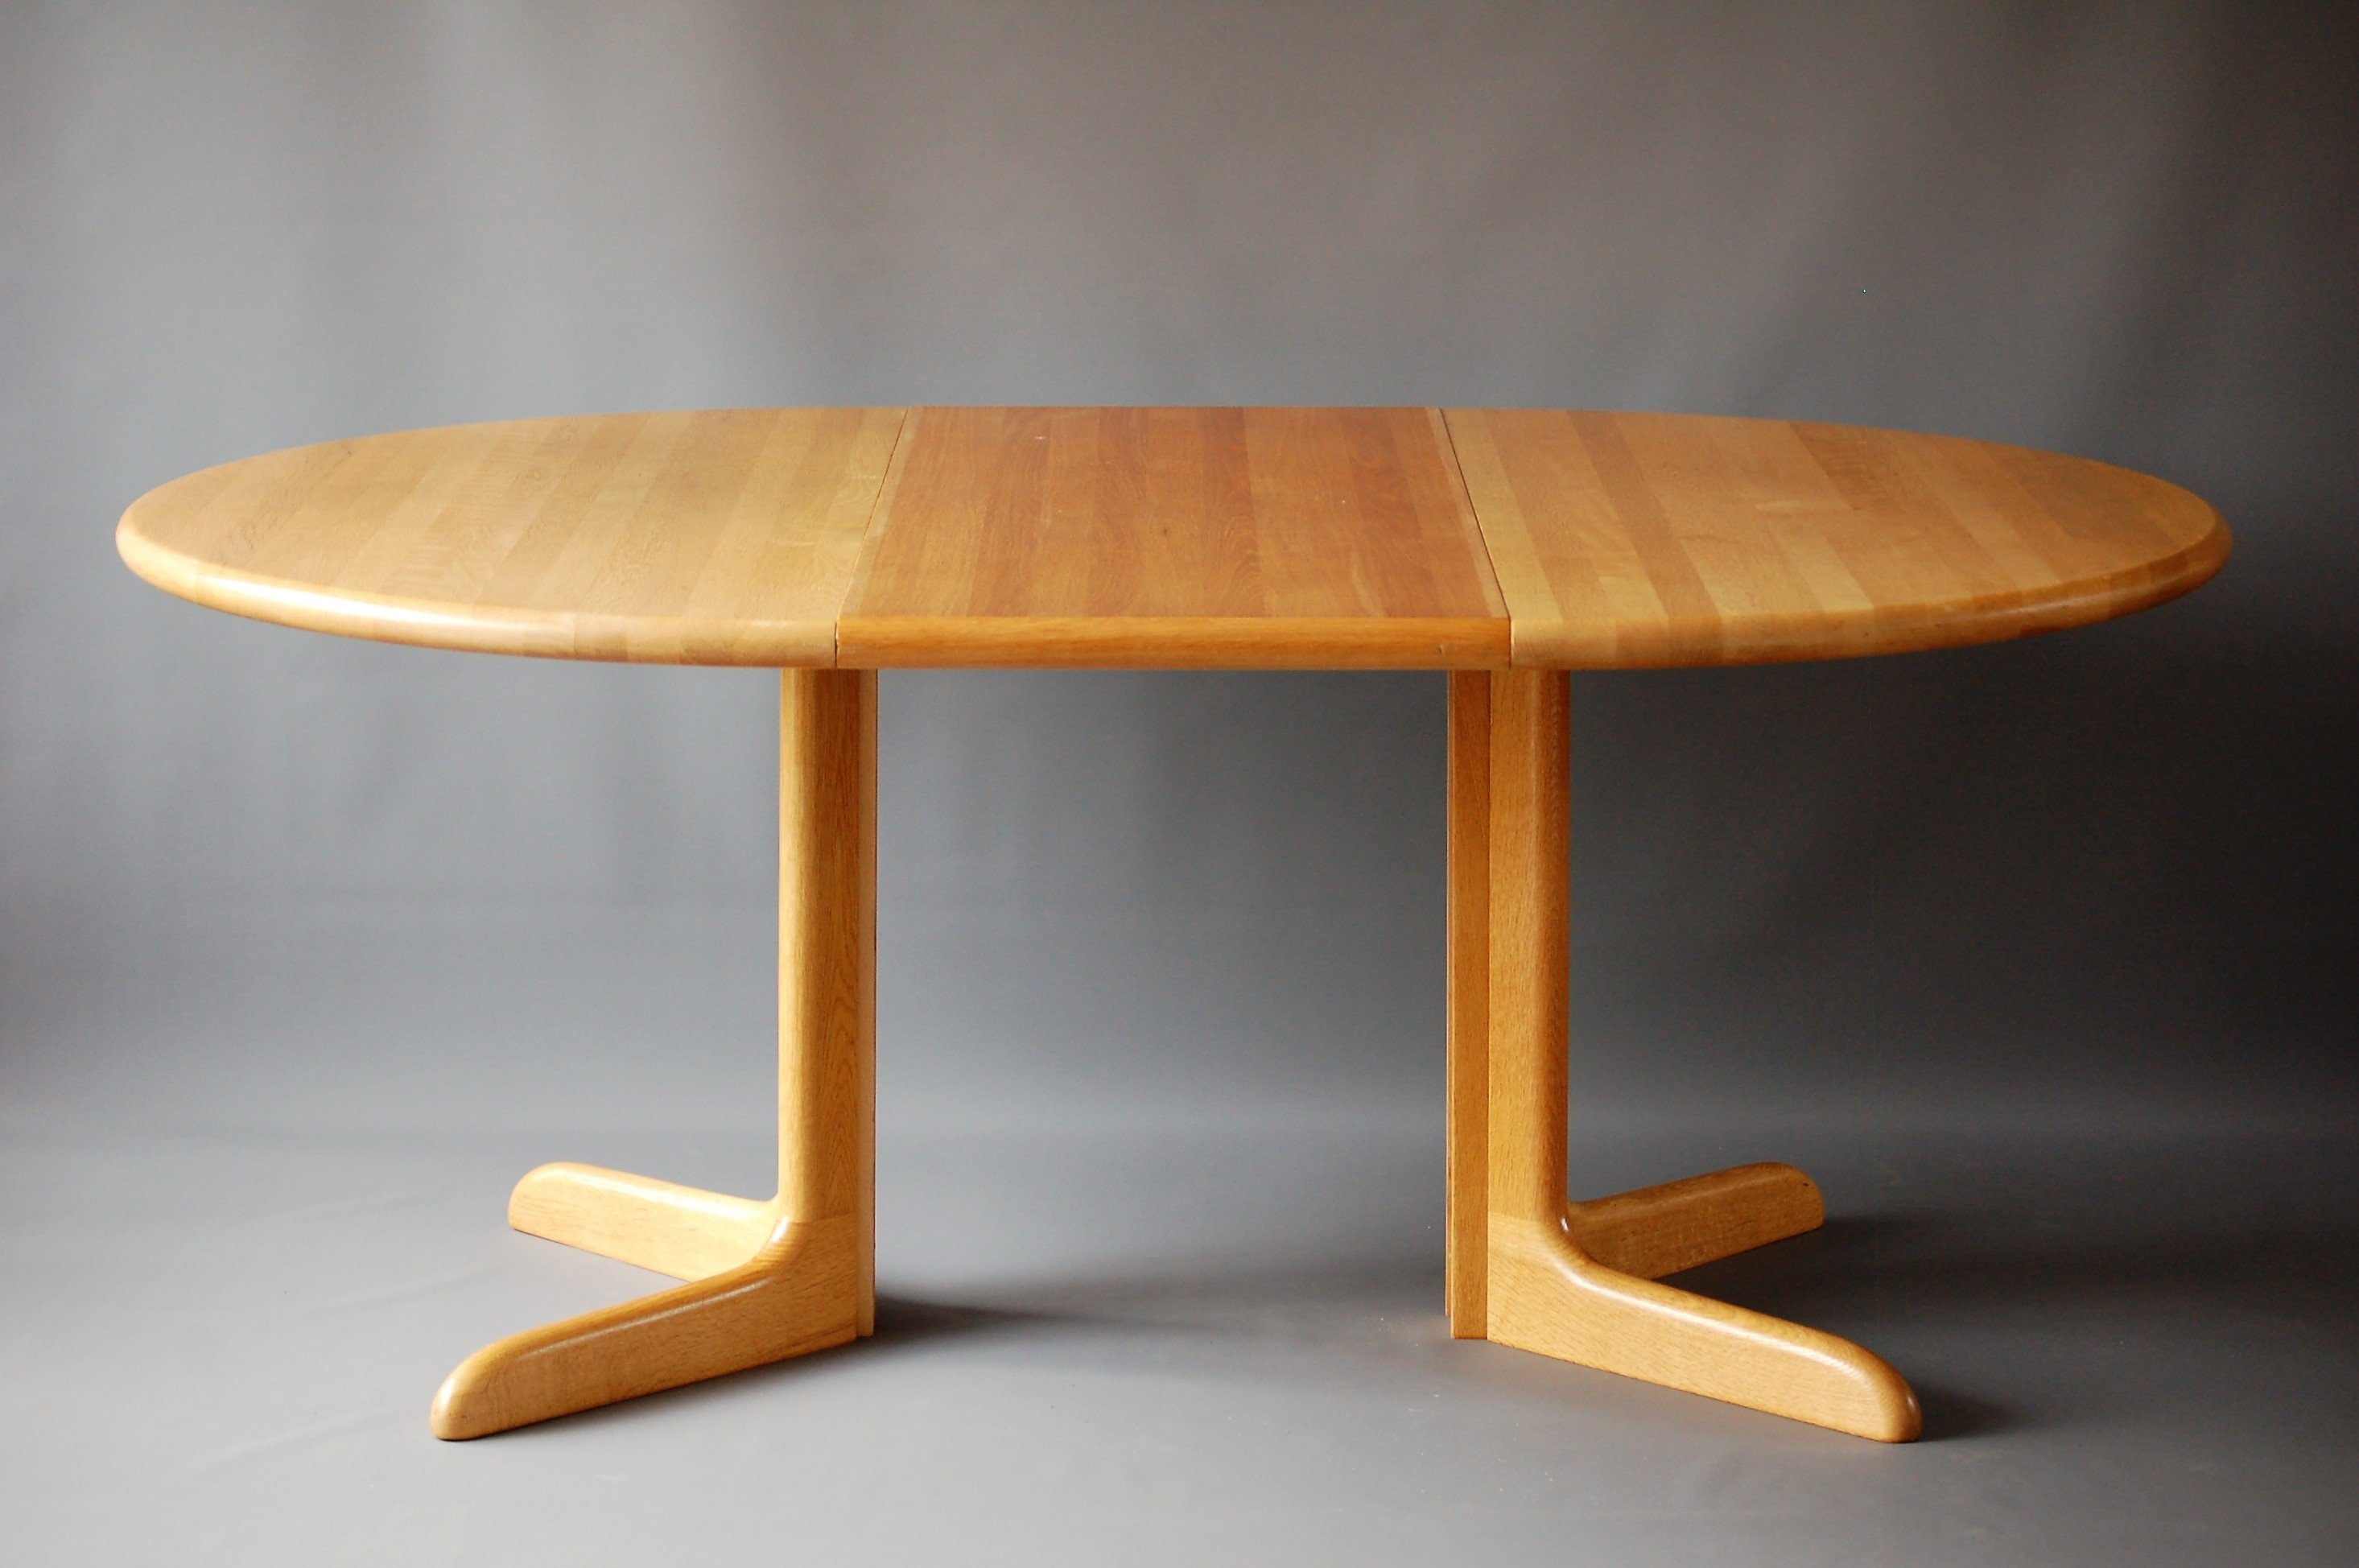 Dining table by Niels Otto Mller for